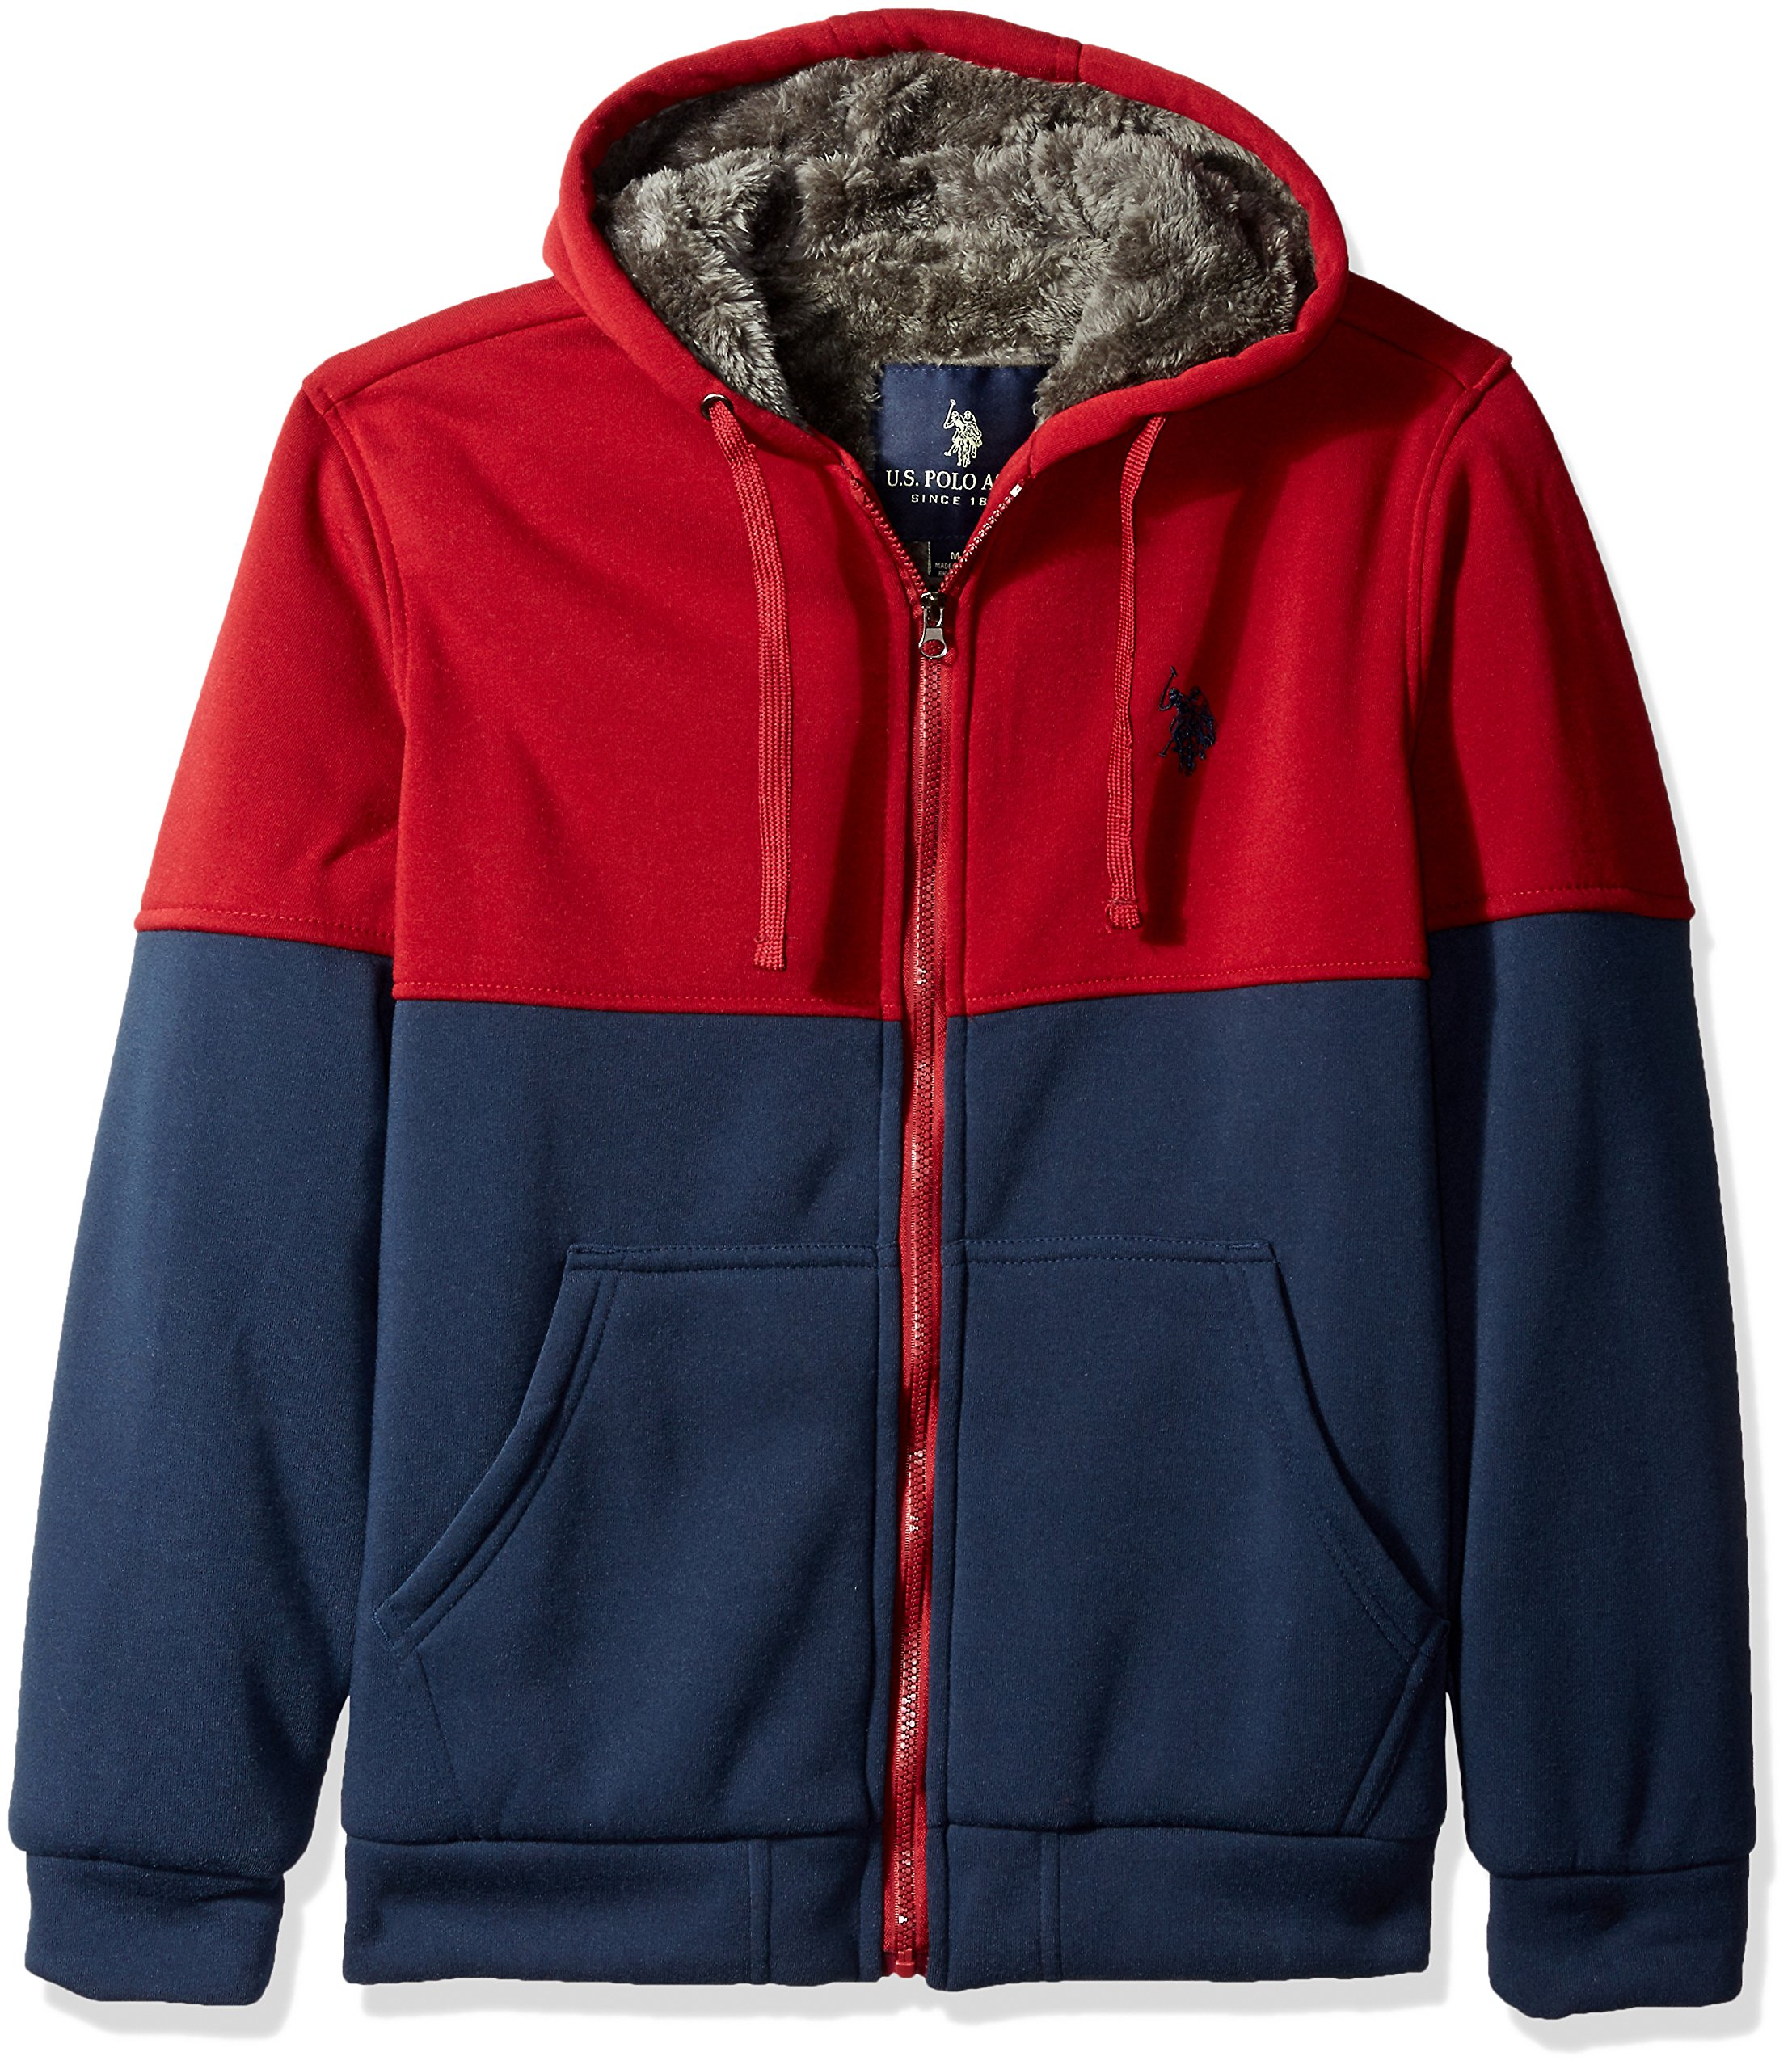 U.S. Polo Assn.. Men's Fleece Color Blocked Hoodie with Faux Sherpa Lining, University Red, Medium